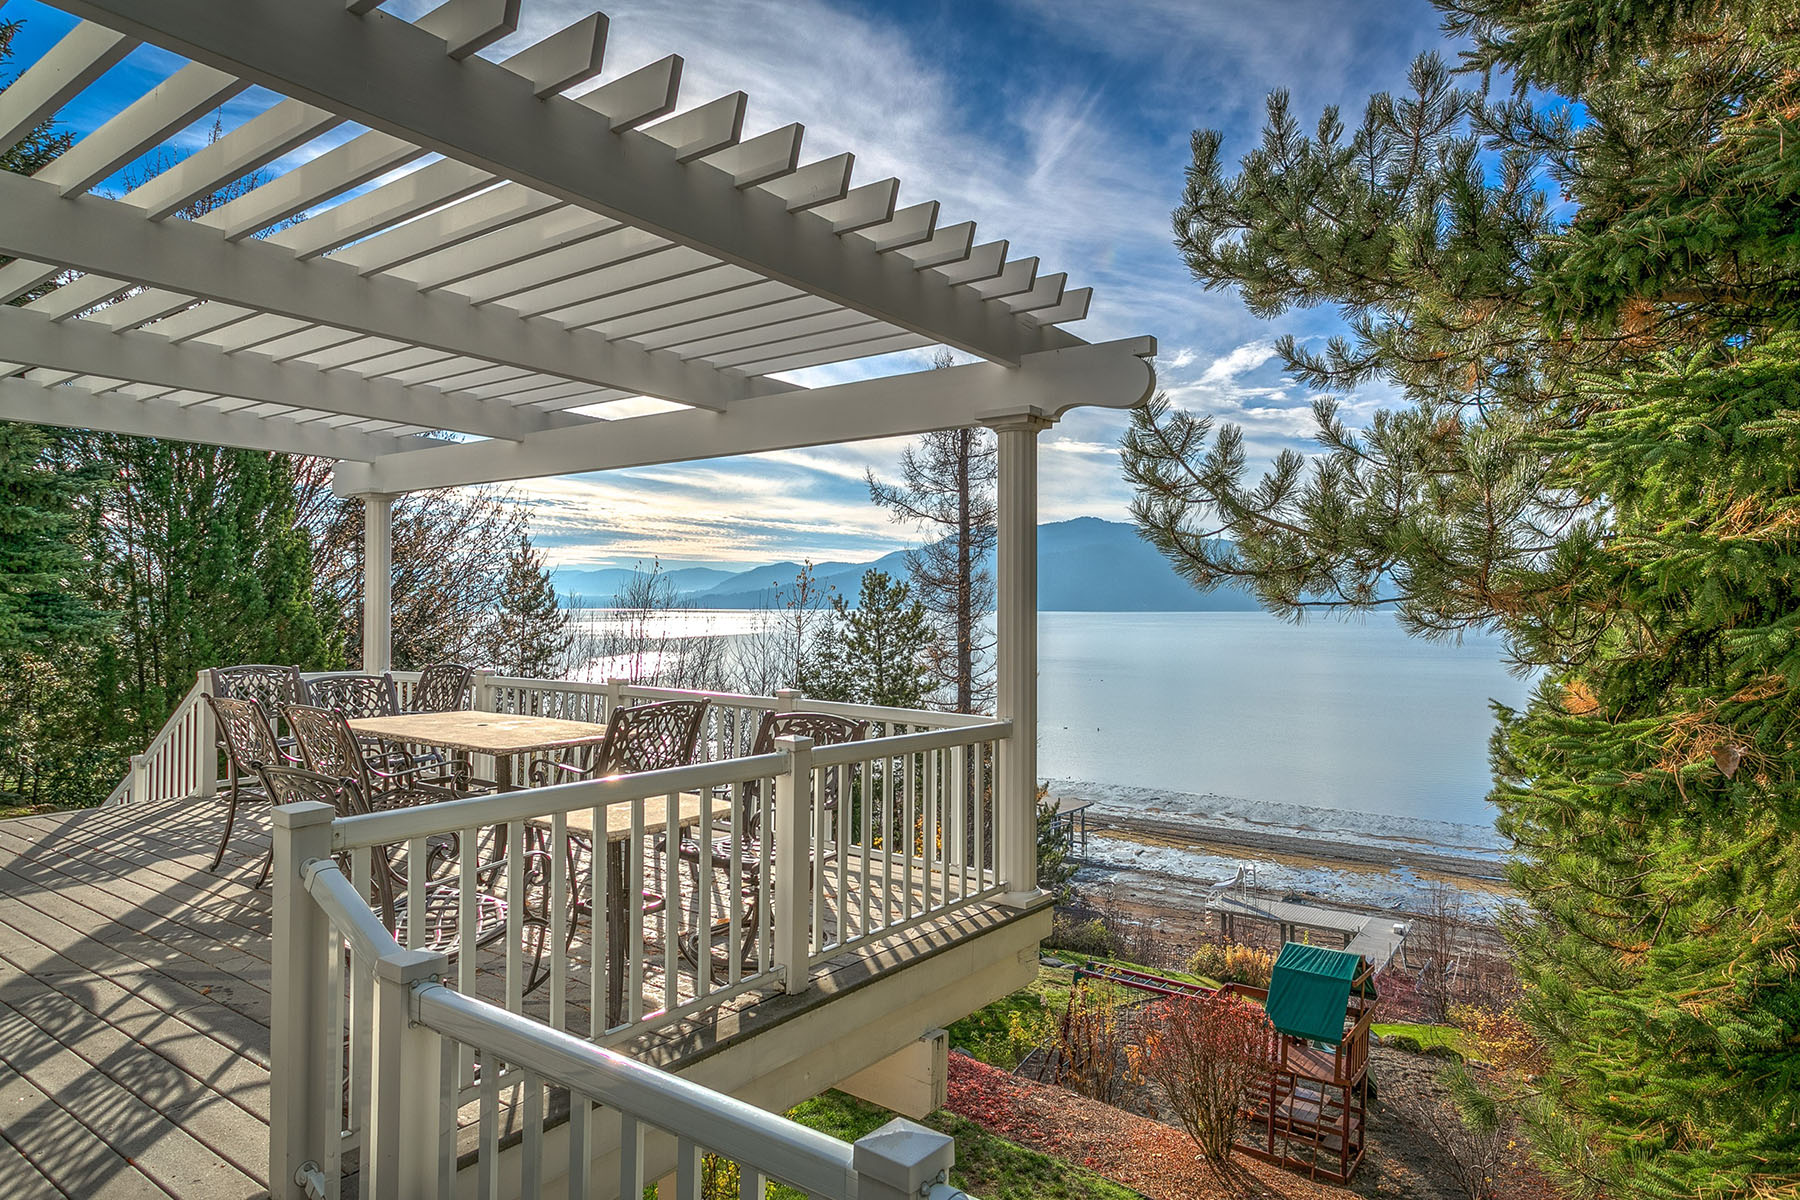 Maison unifamiliale pour l Vente à Ponder Point Drive Waterfront 616 Ponder Point Dr Sandpoint, Idaho, 83864 États-Unis